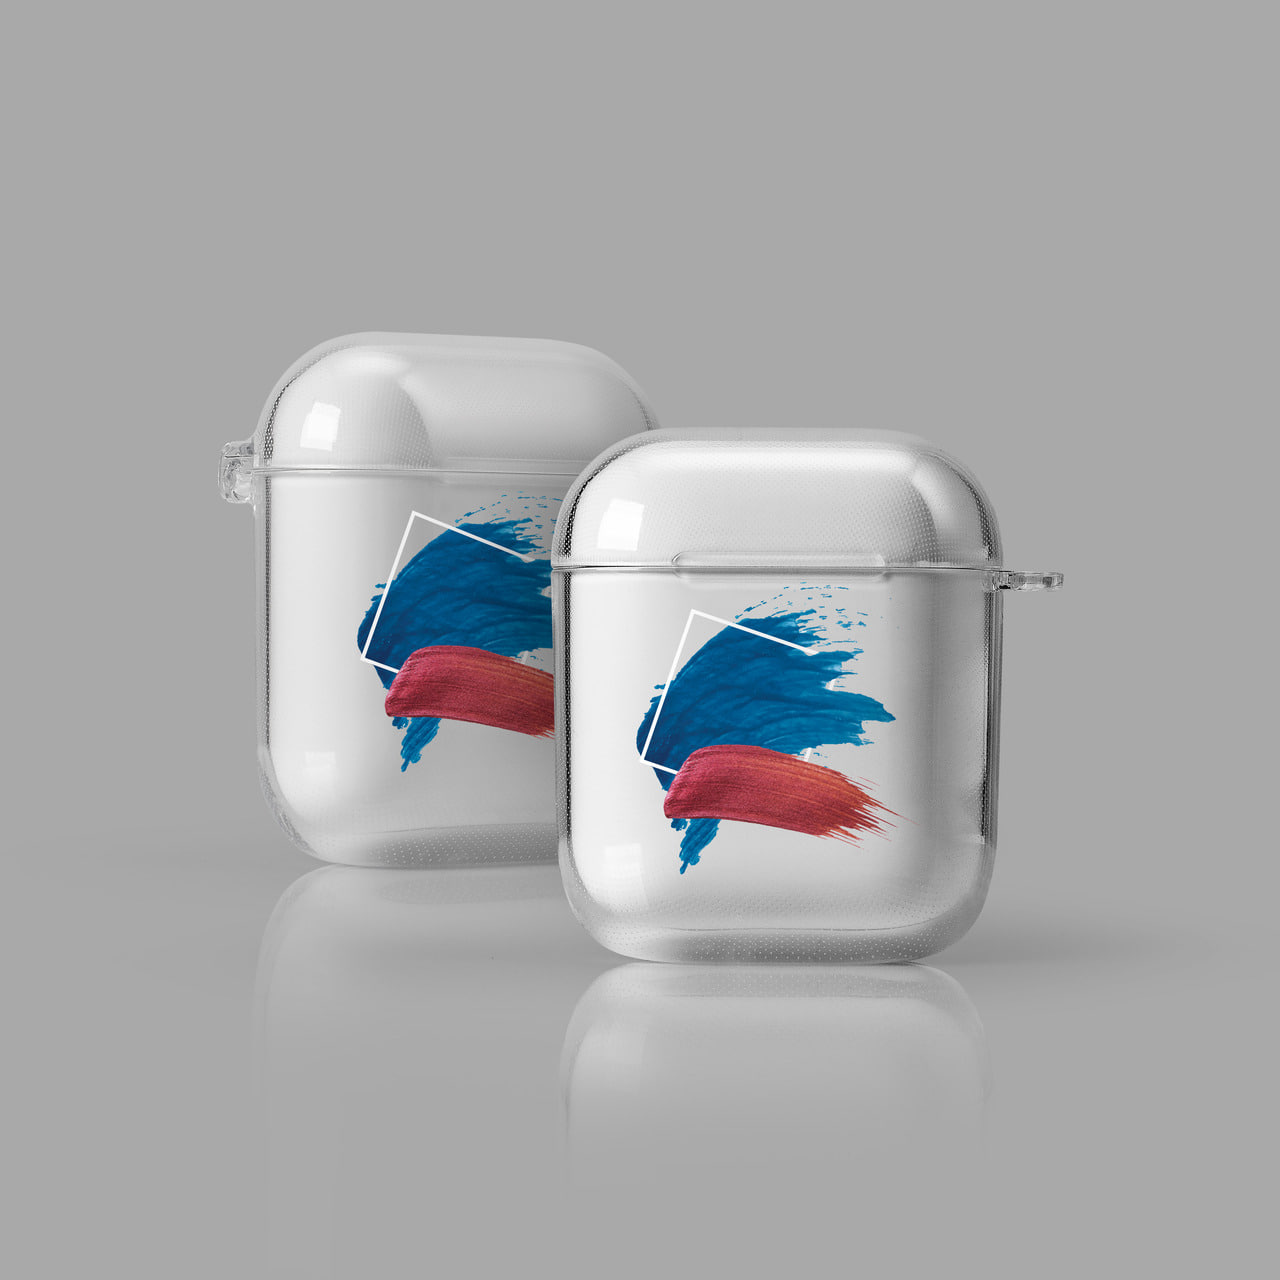 [Airpods cases] Brush Stroke No.05